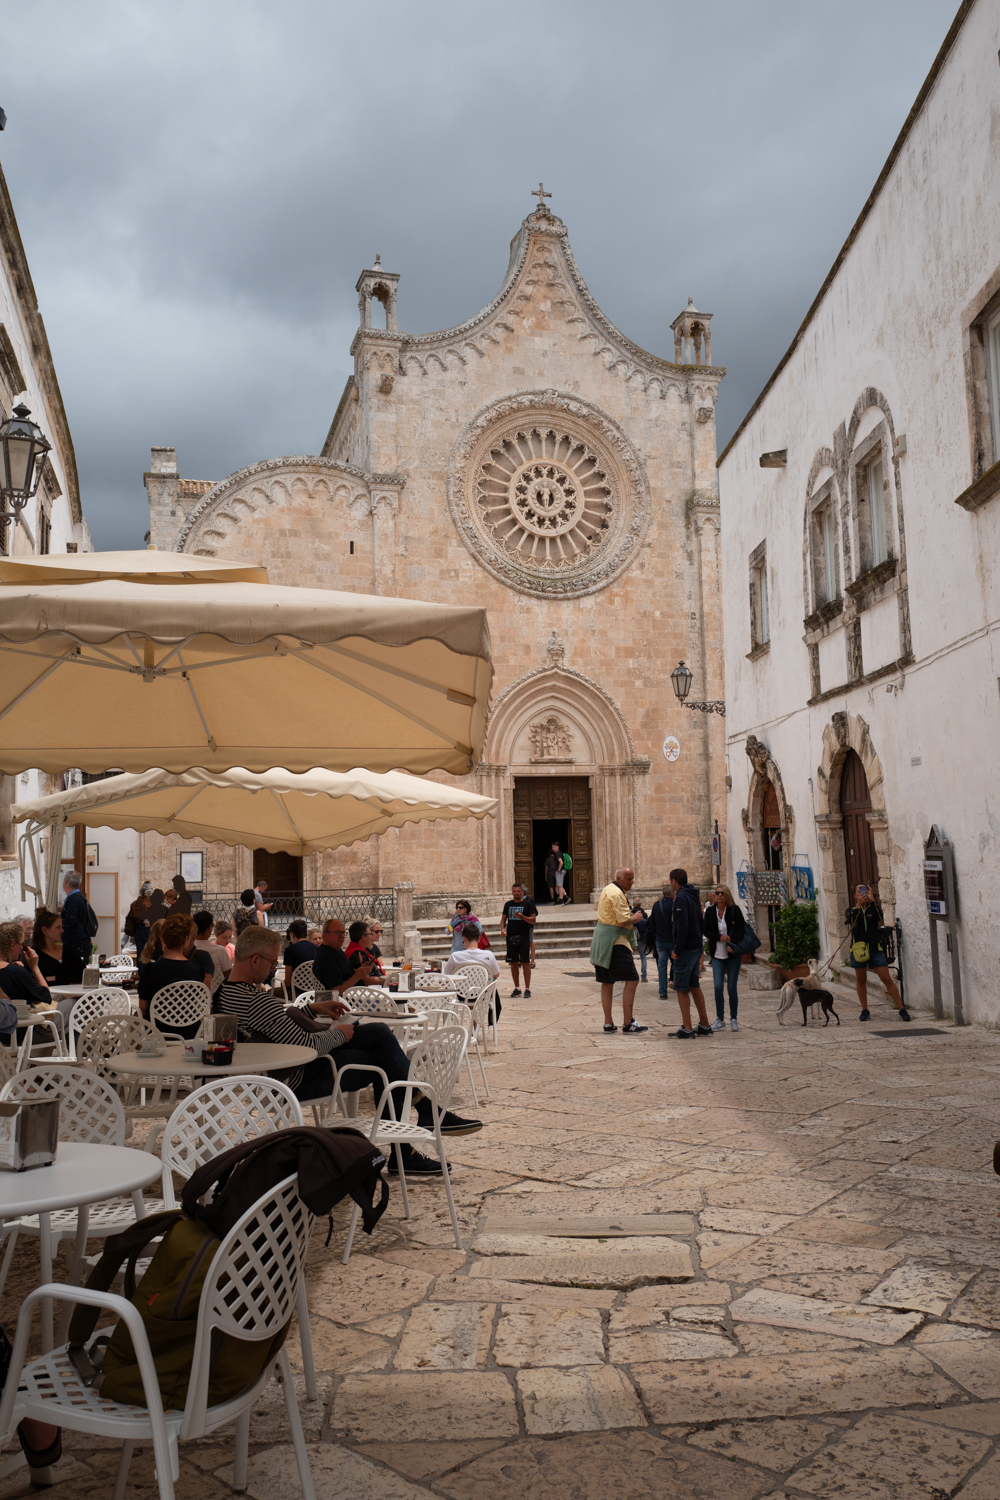 Strolling through Ostuni